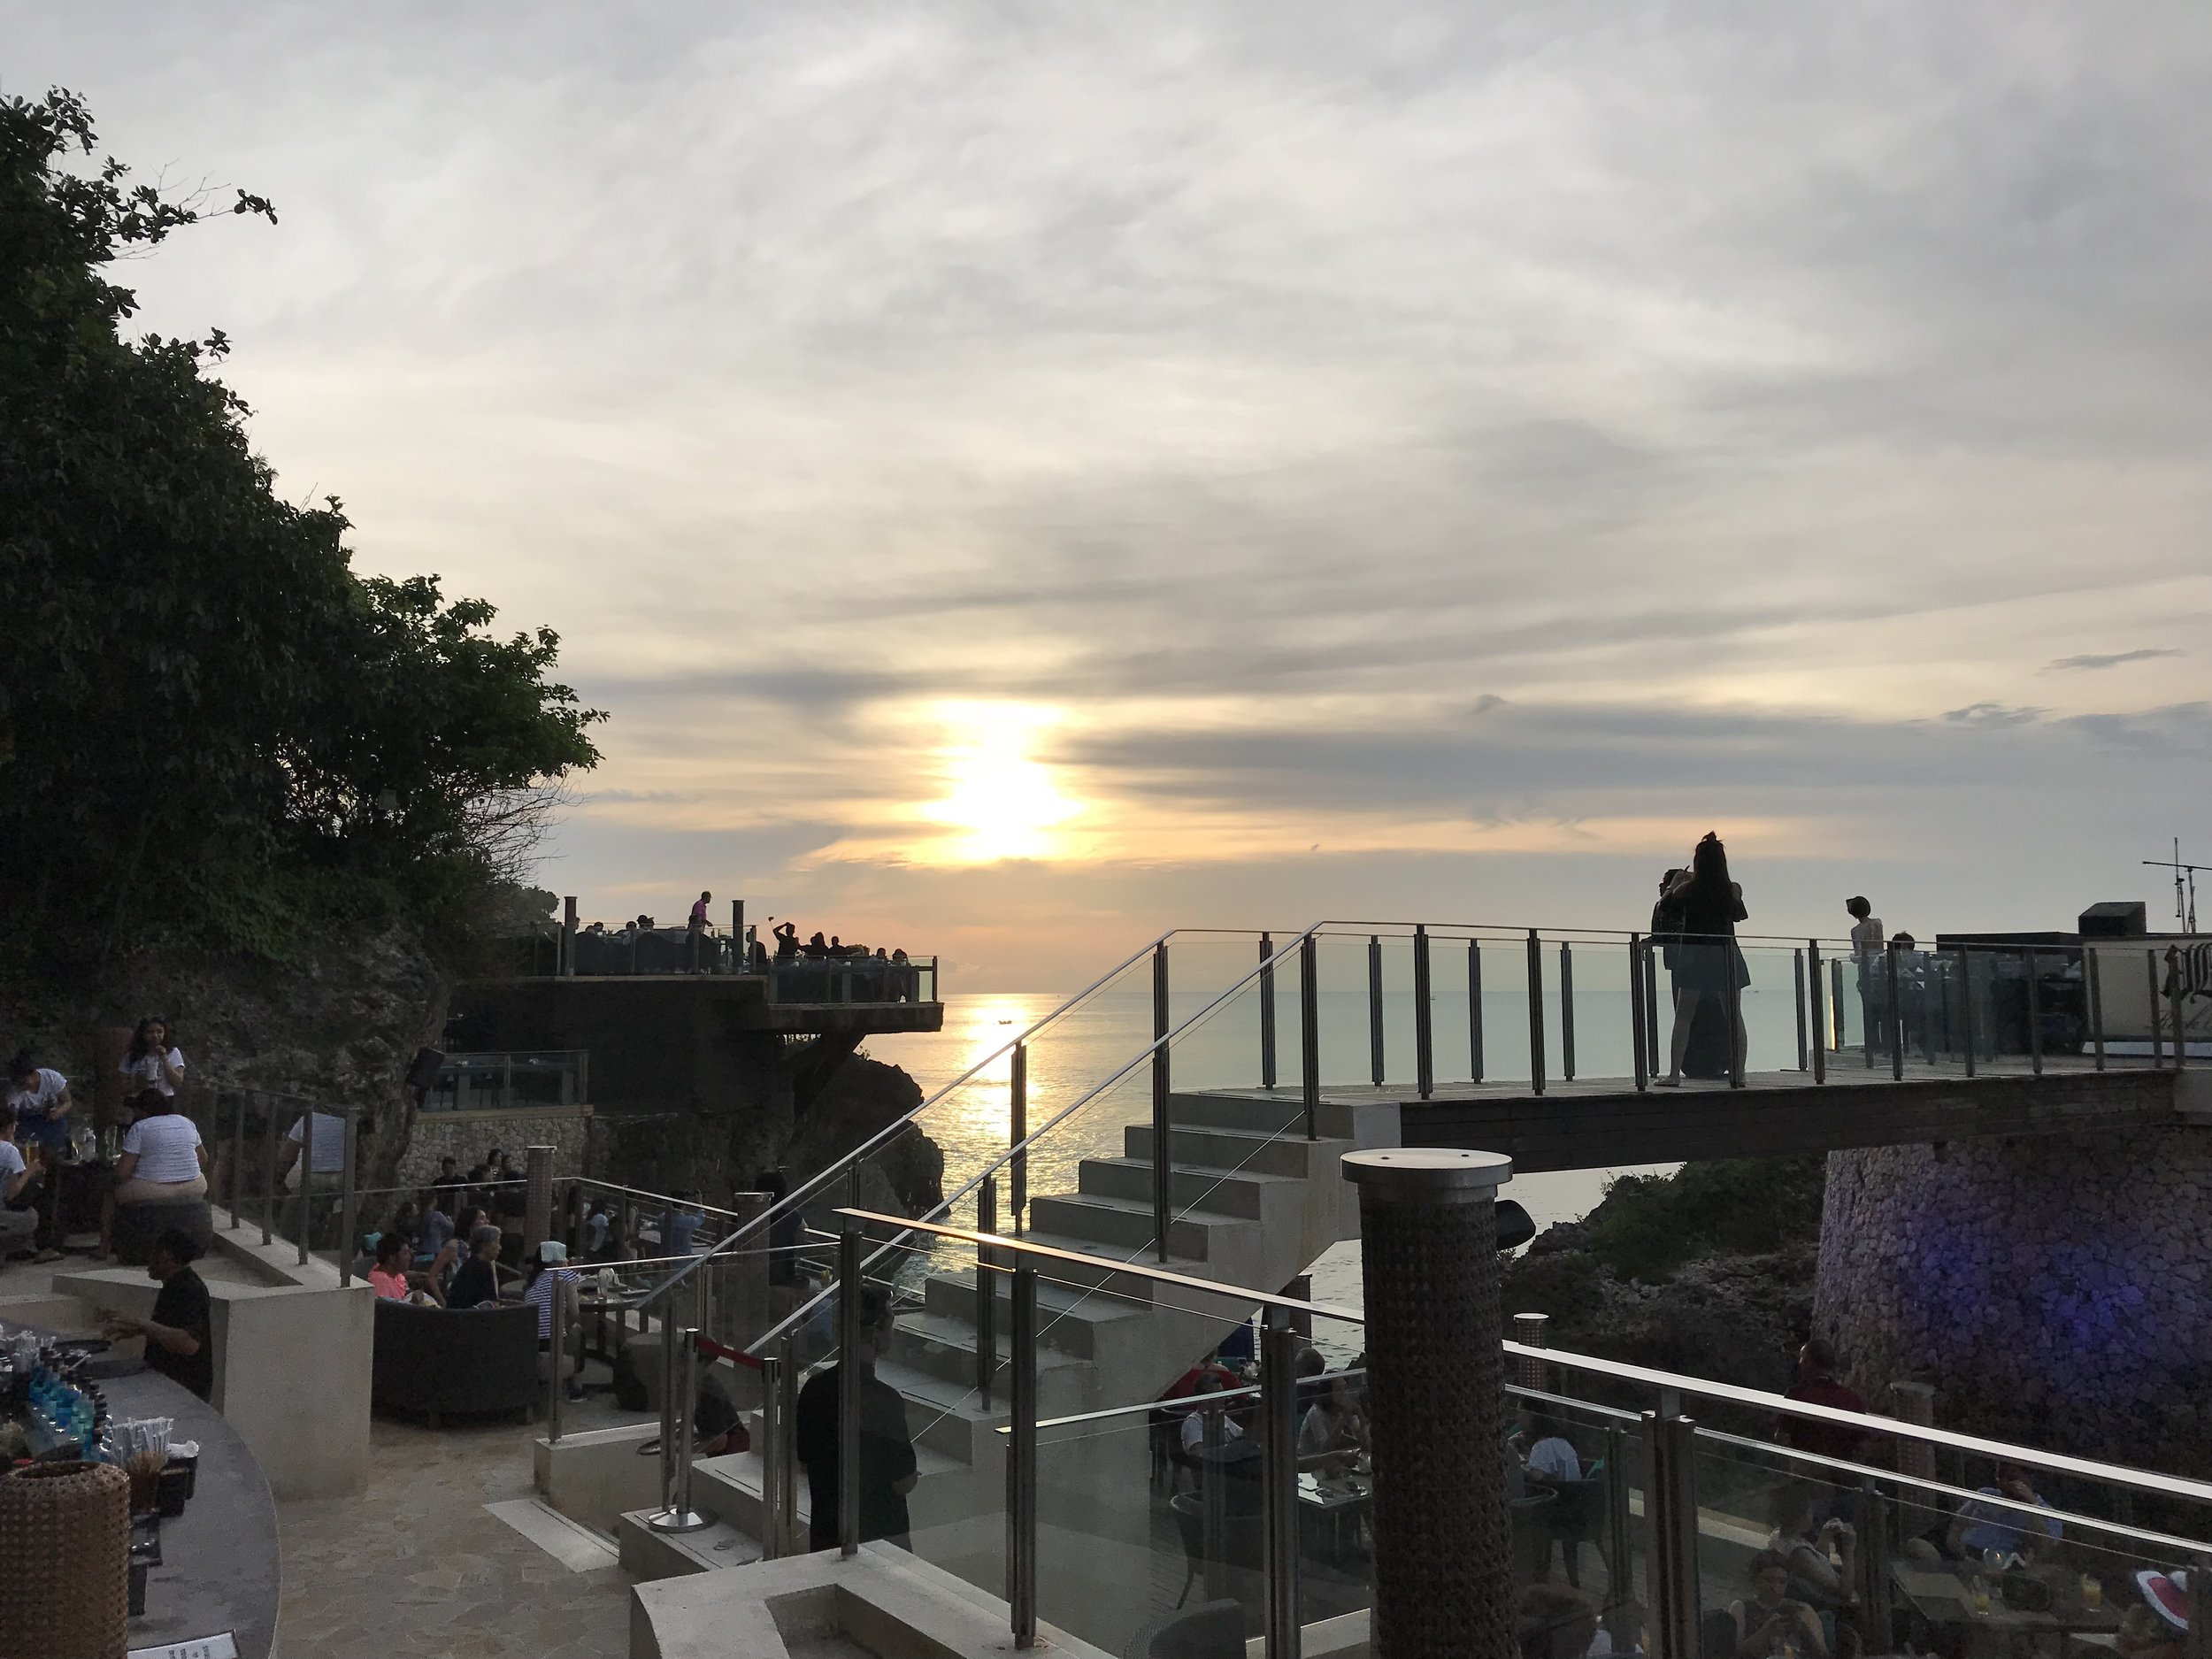 Waiting for the sun to set at the Rock Bar in Bali. make sure you ask for a seat with a view.